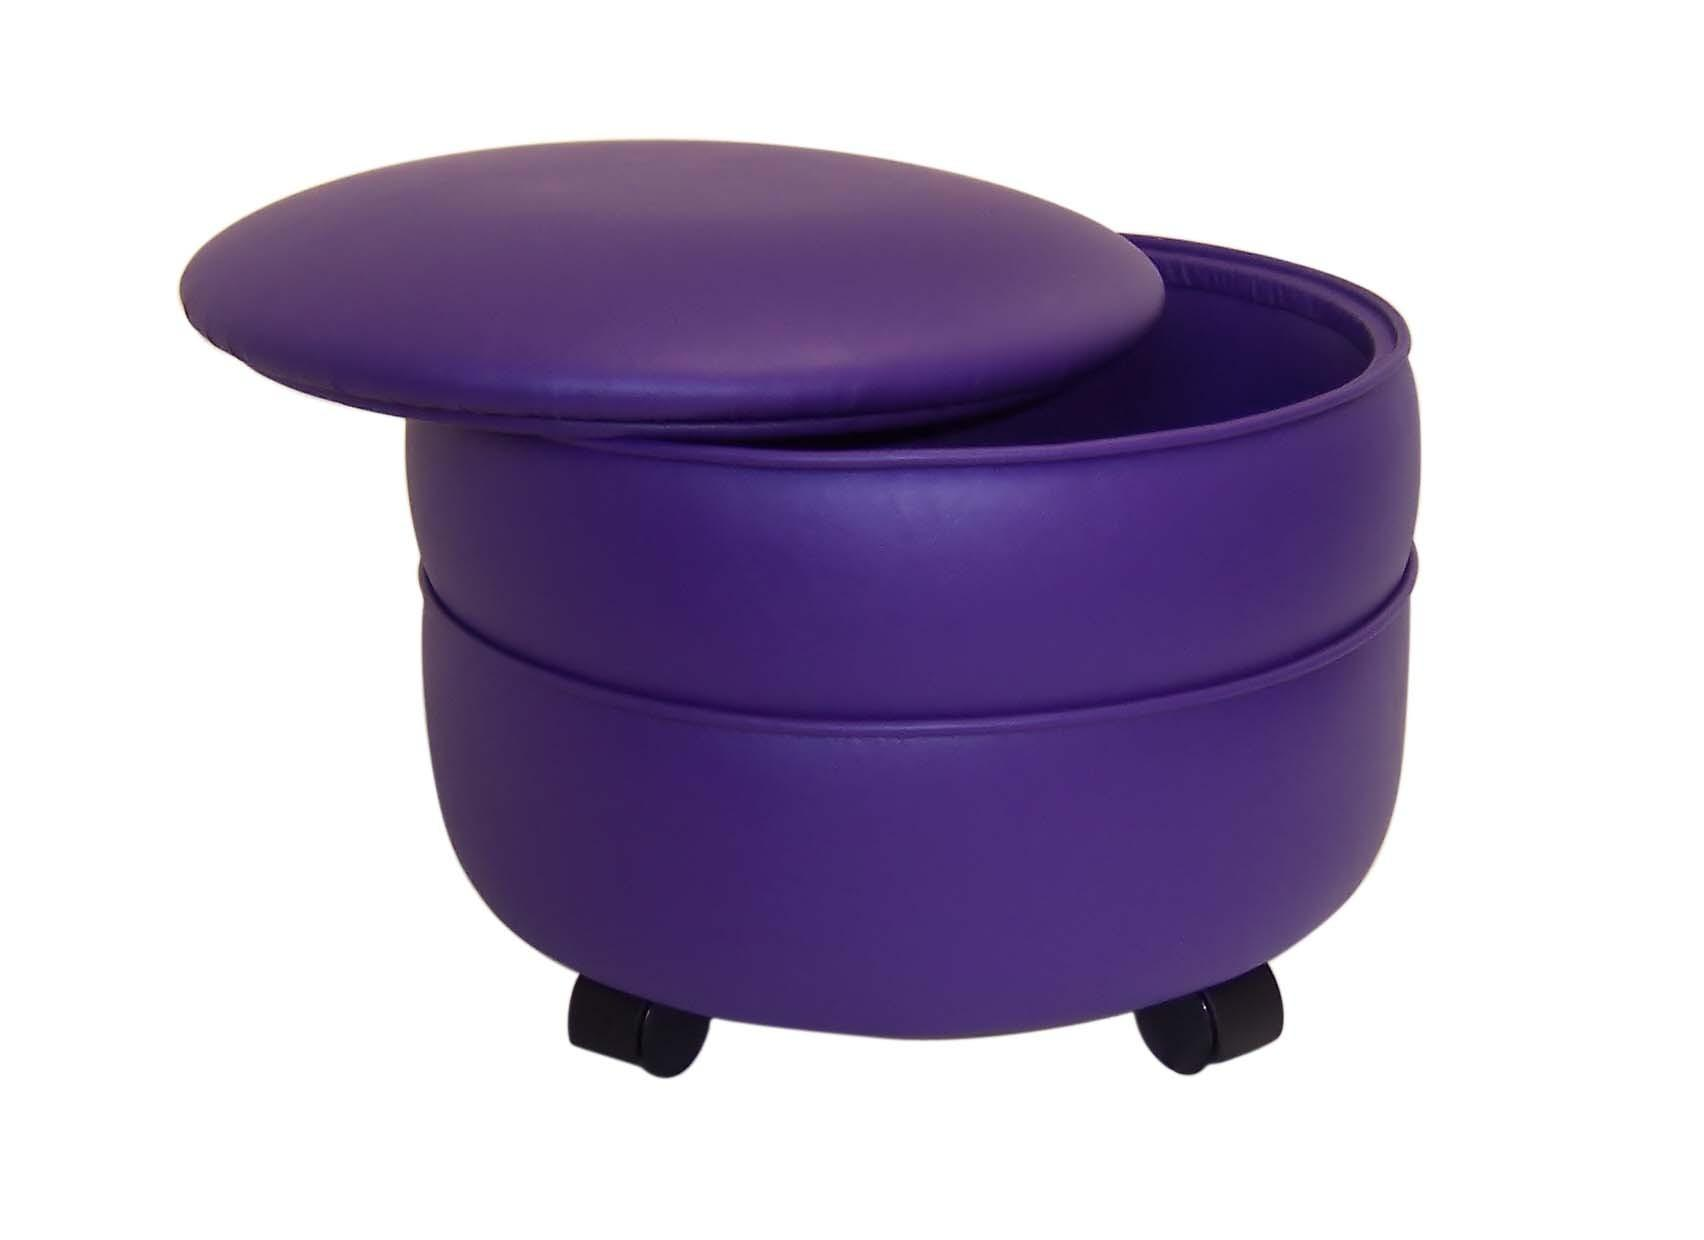 What to Remember When Buying Patio Furniture : Purple Ottoman